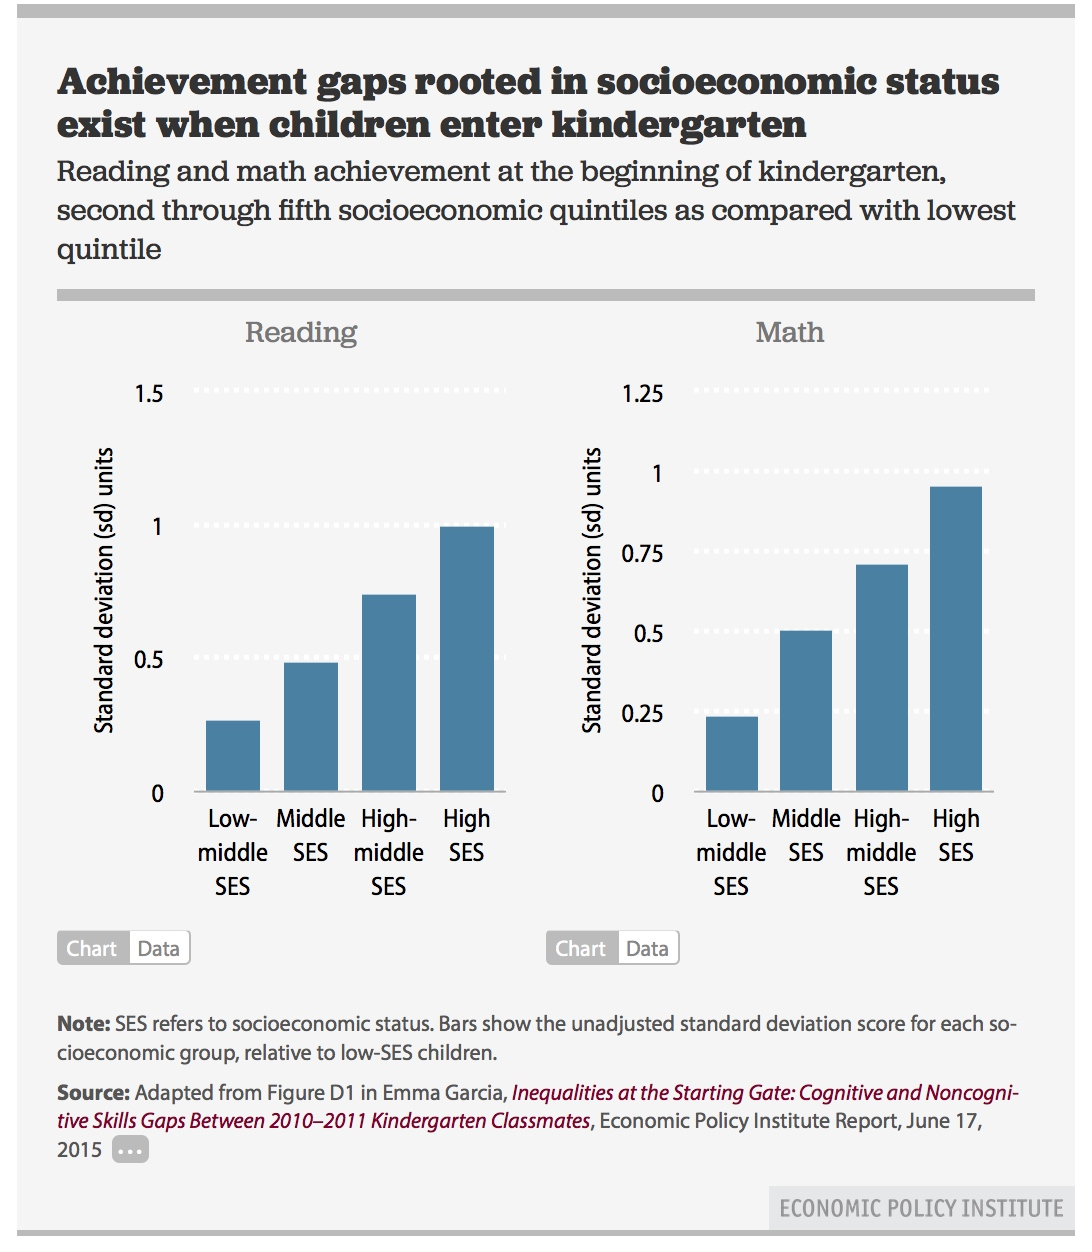 achievement gaps in kindergarten rooted in socioeconomic status epi